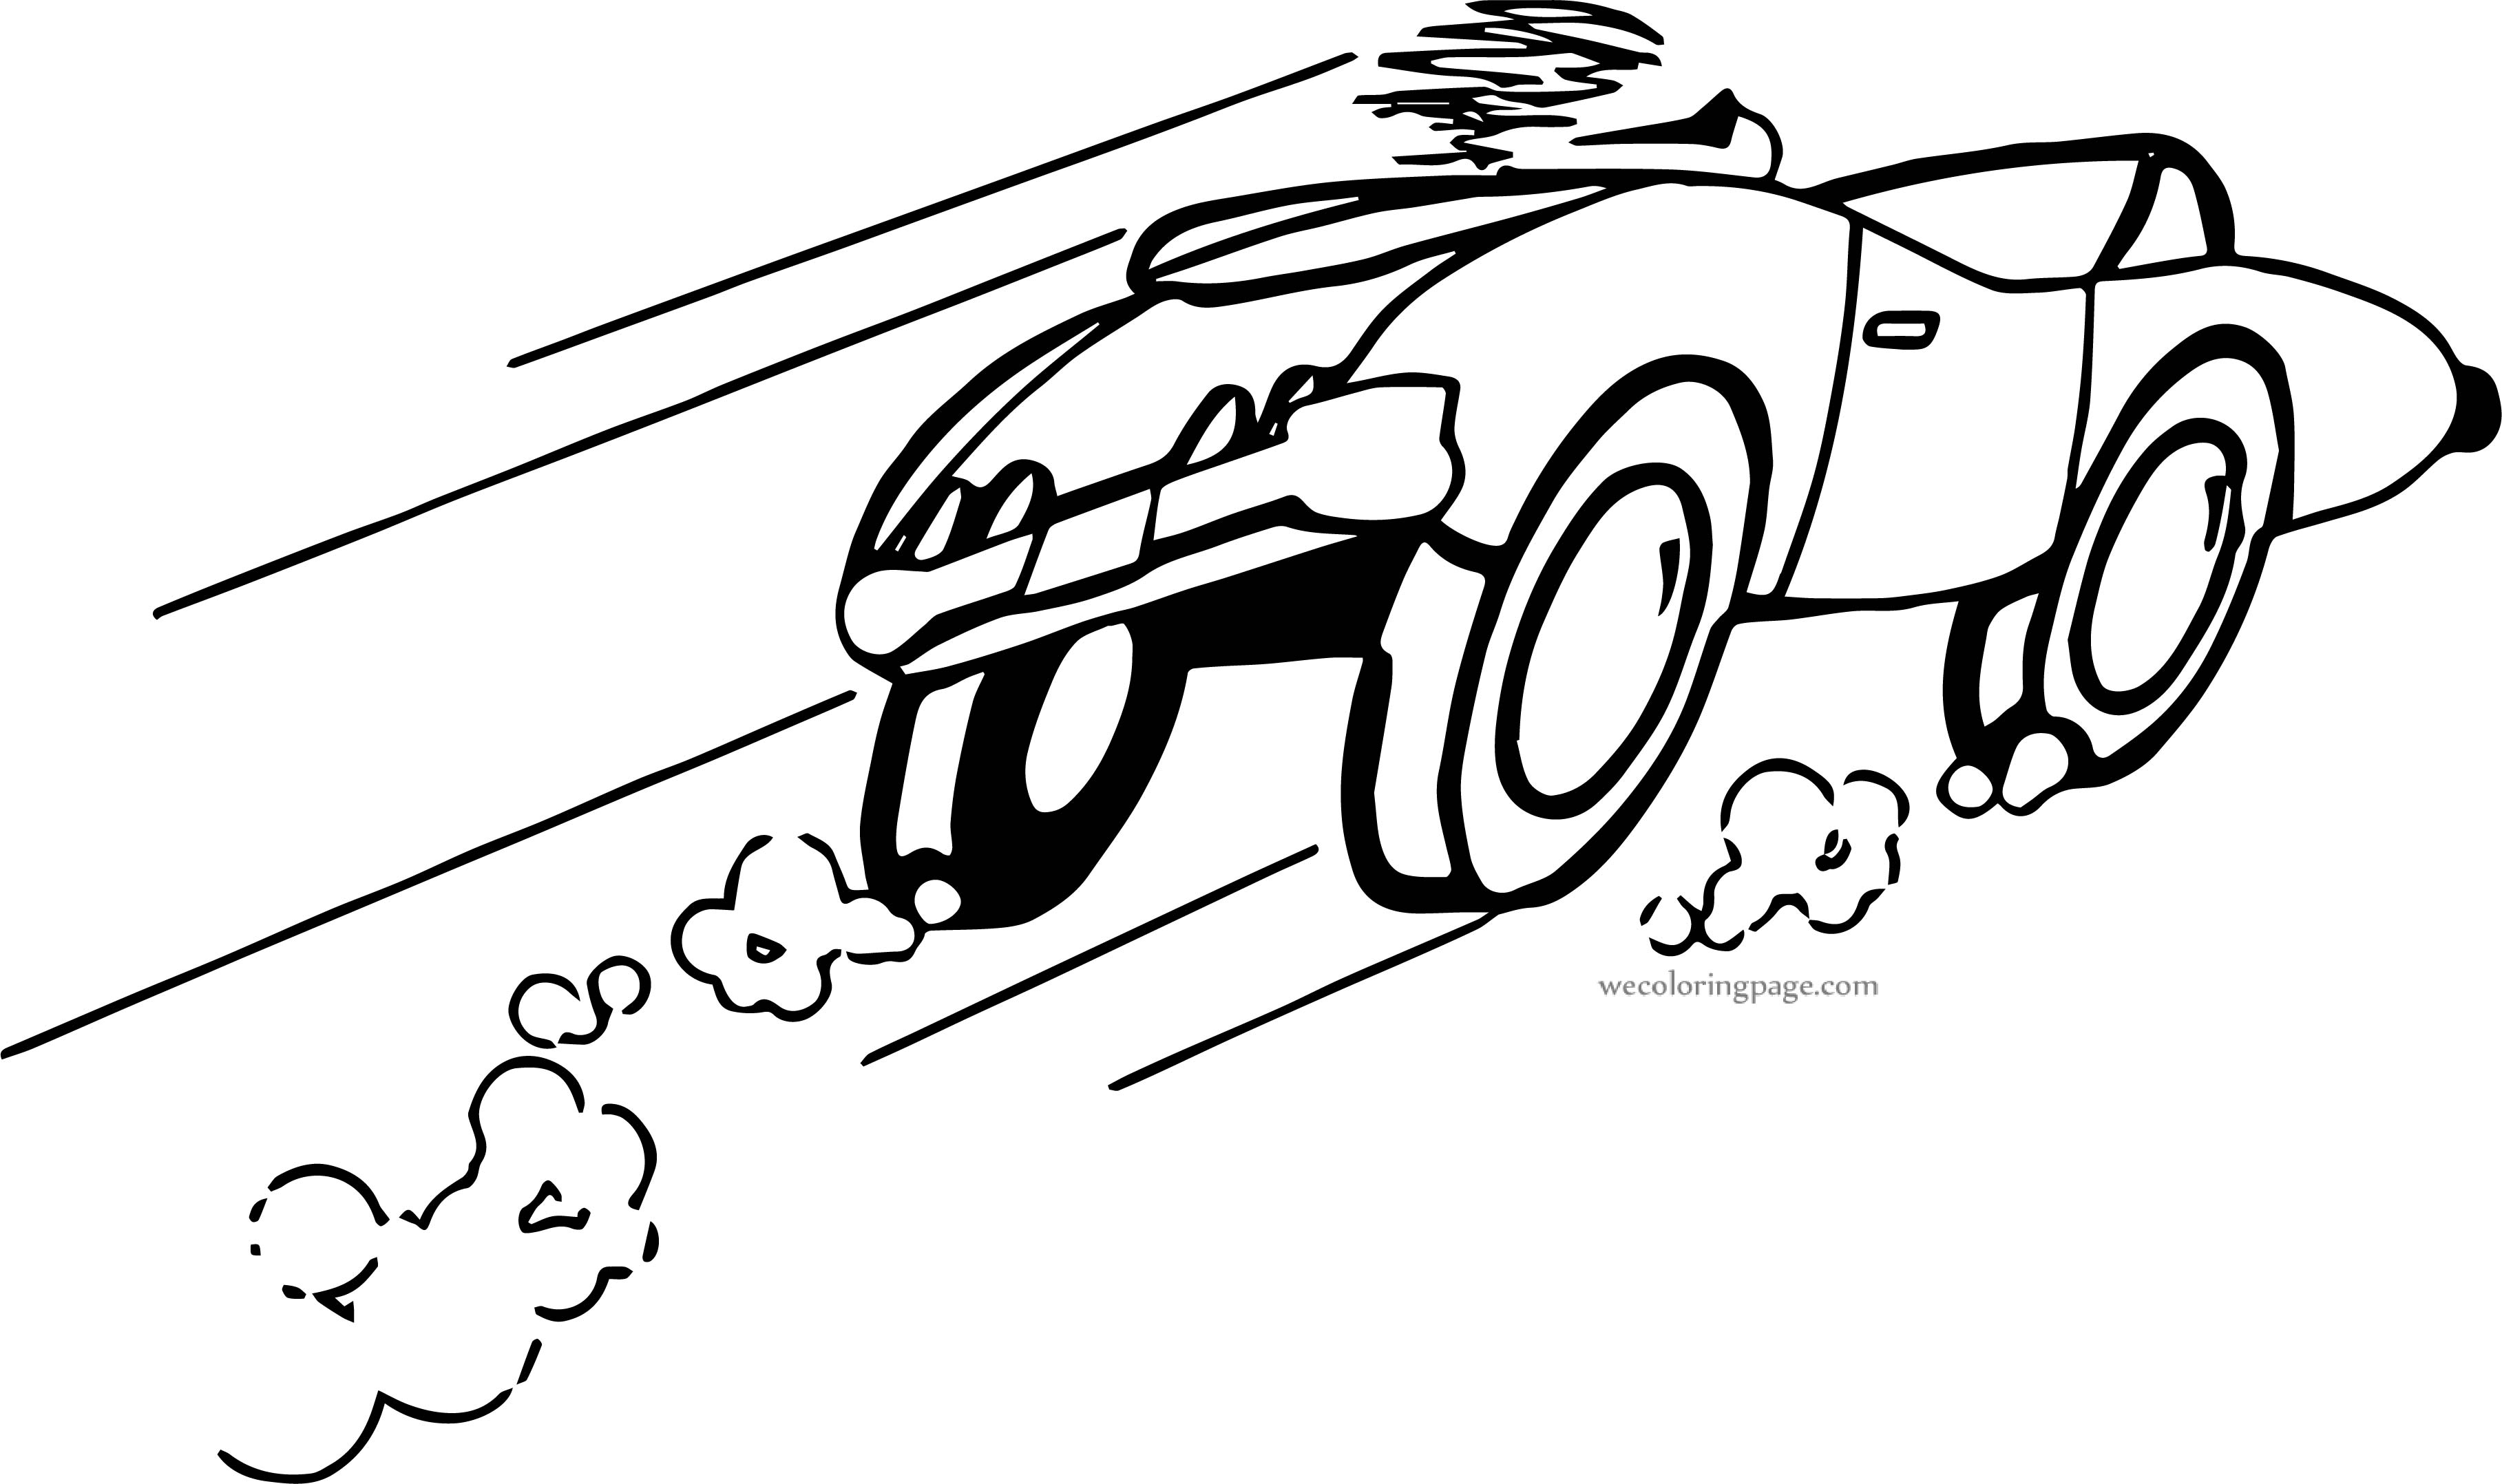 Car Wecoloringpage Coloring Page 175